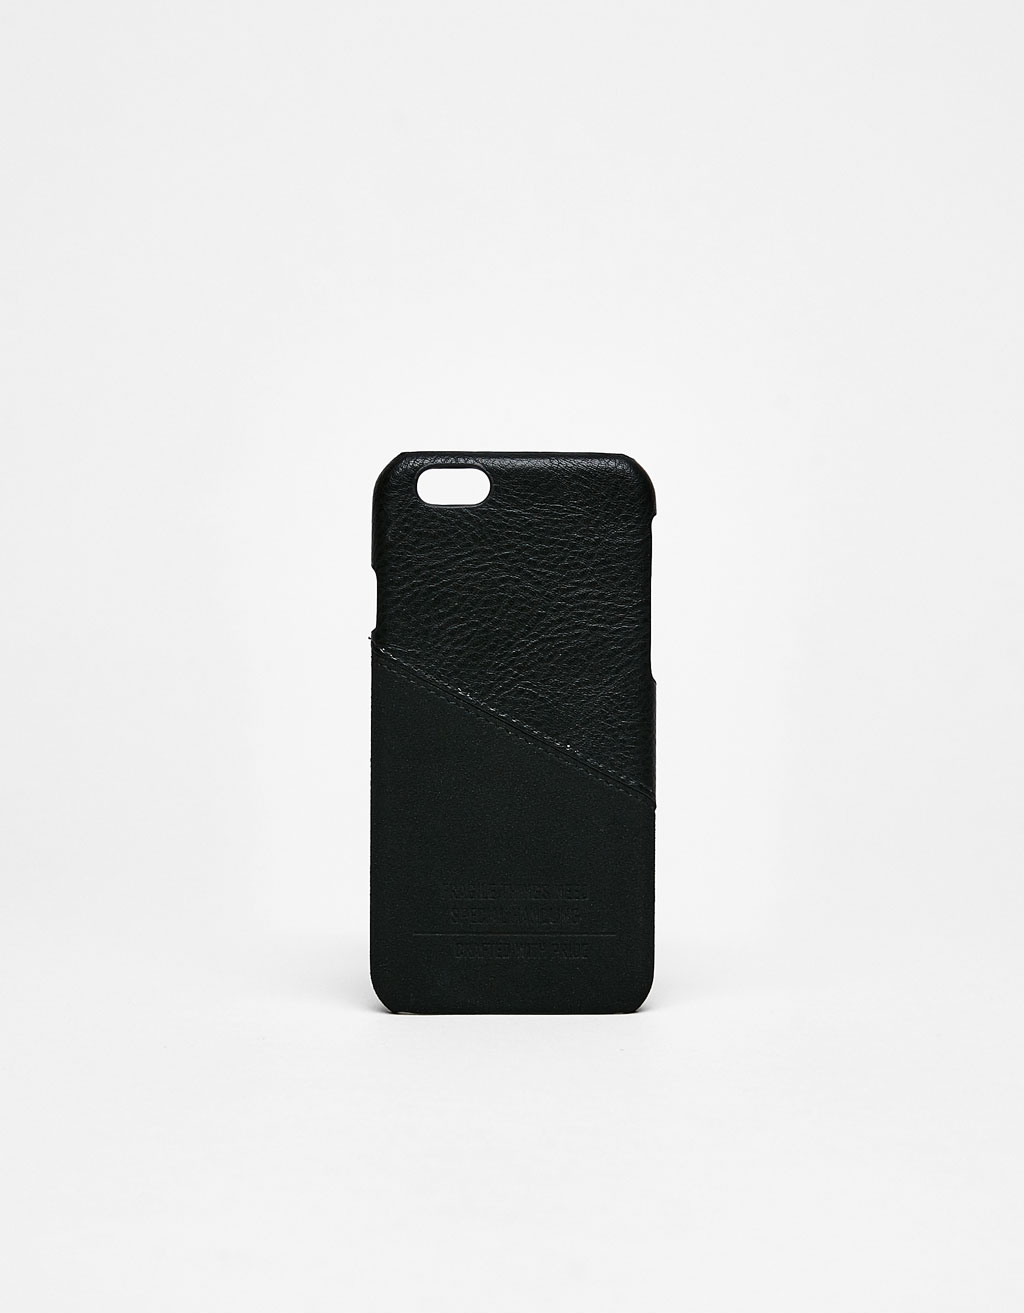 Faux leather iPhone 6/6s case